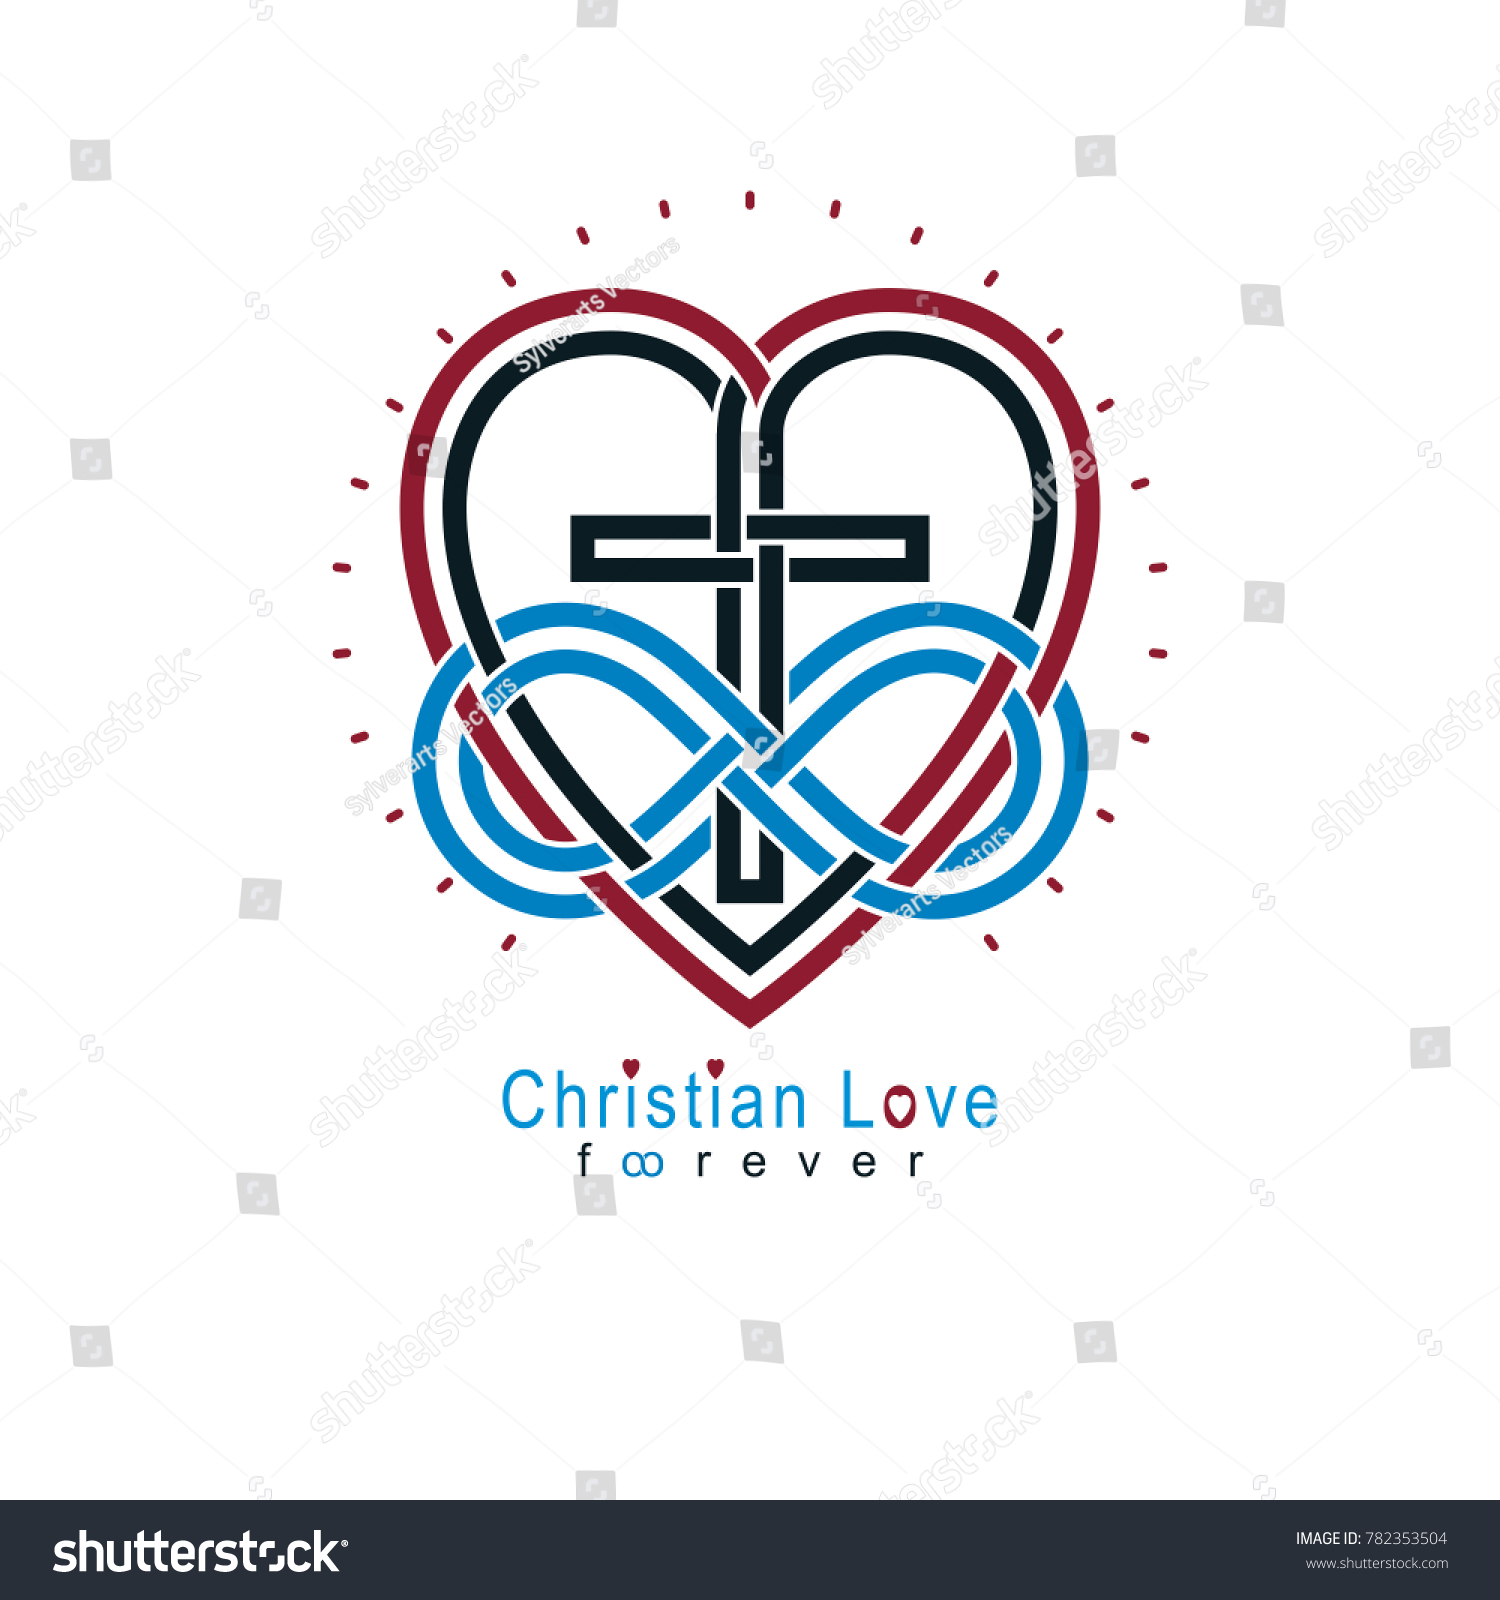 Everlasting christian love true belief god stock illustration everlasting christian love and true belief in god creative symbol design combined with infinity endless biocorpaavc Choice Image